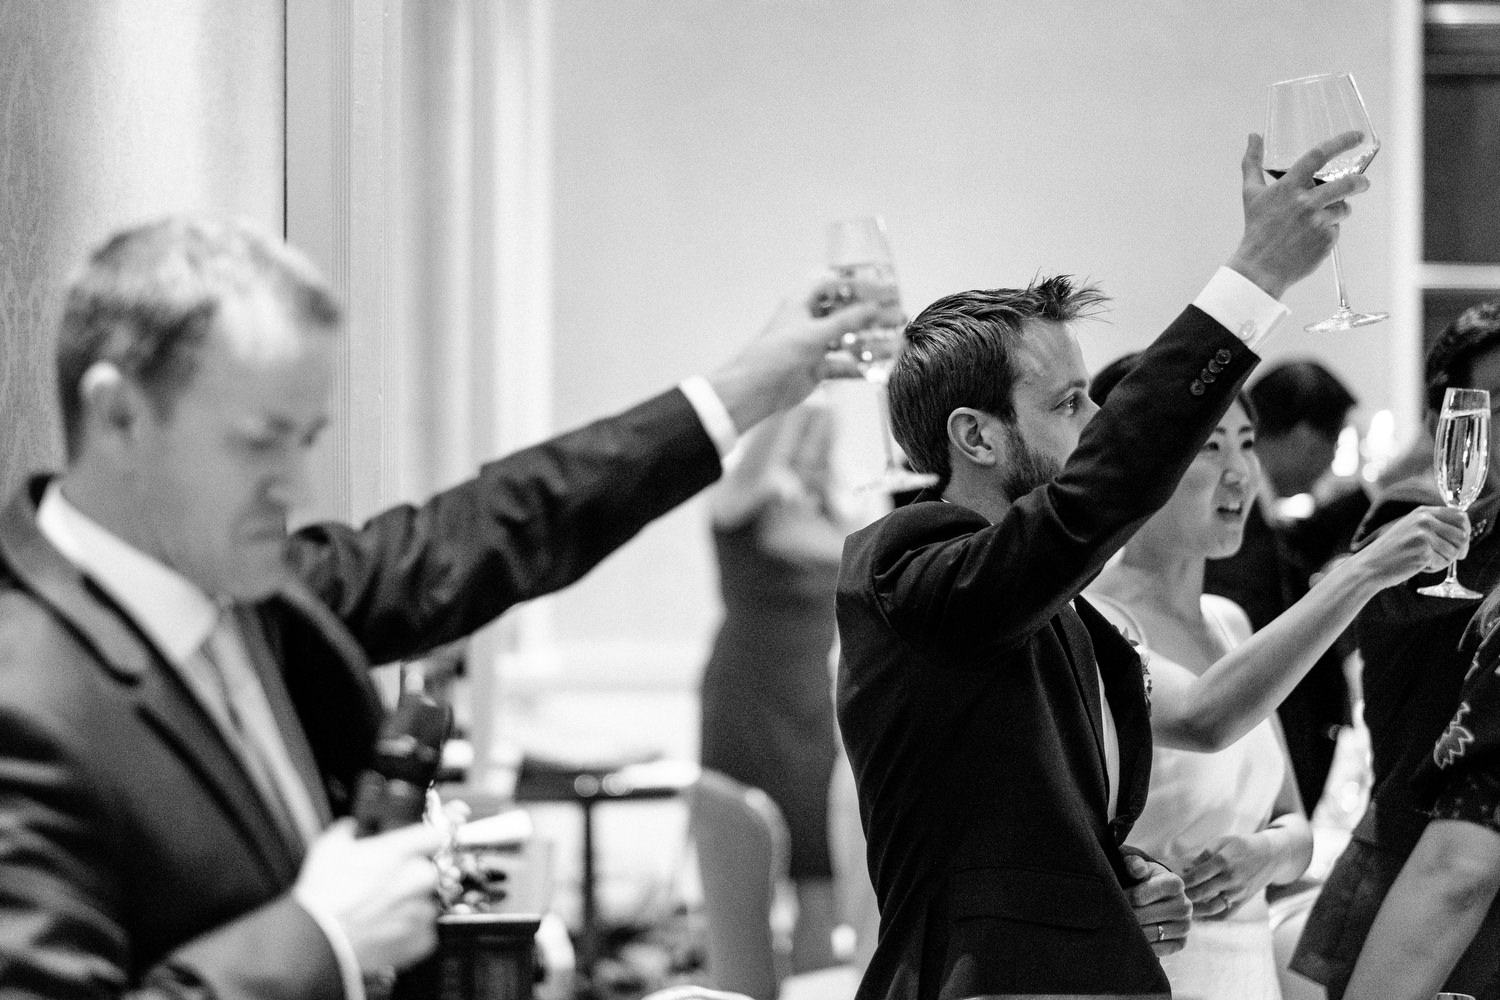 dmp0649_photographer_wedding_dublin_david_mcclelland_candid_photography_fujifilm_shelbourne_reception_documentary